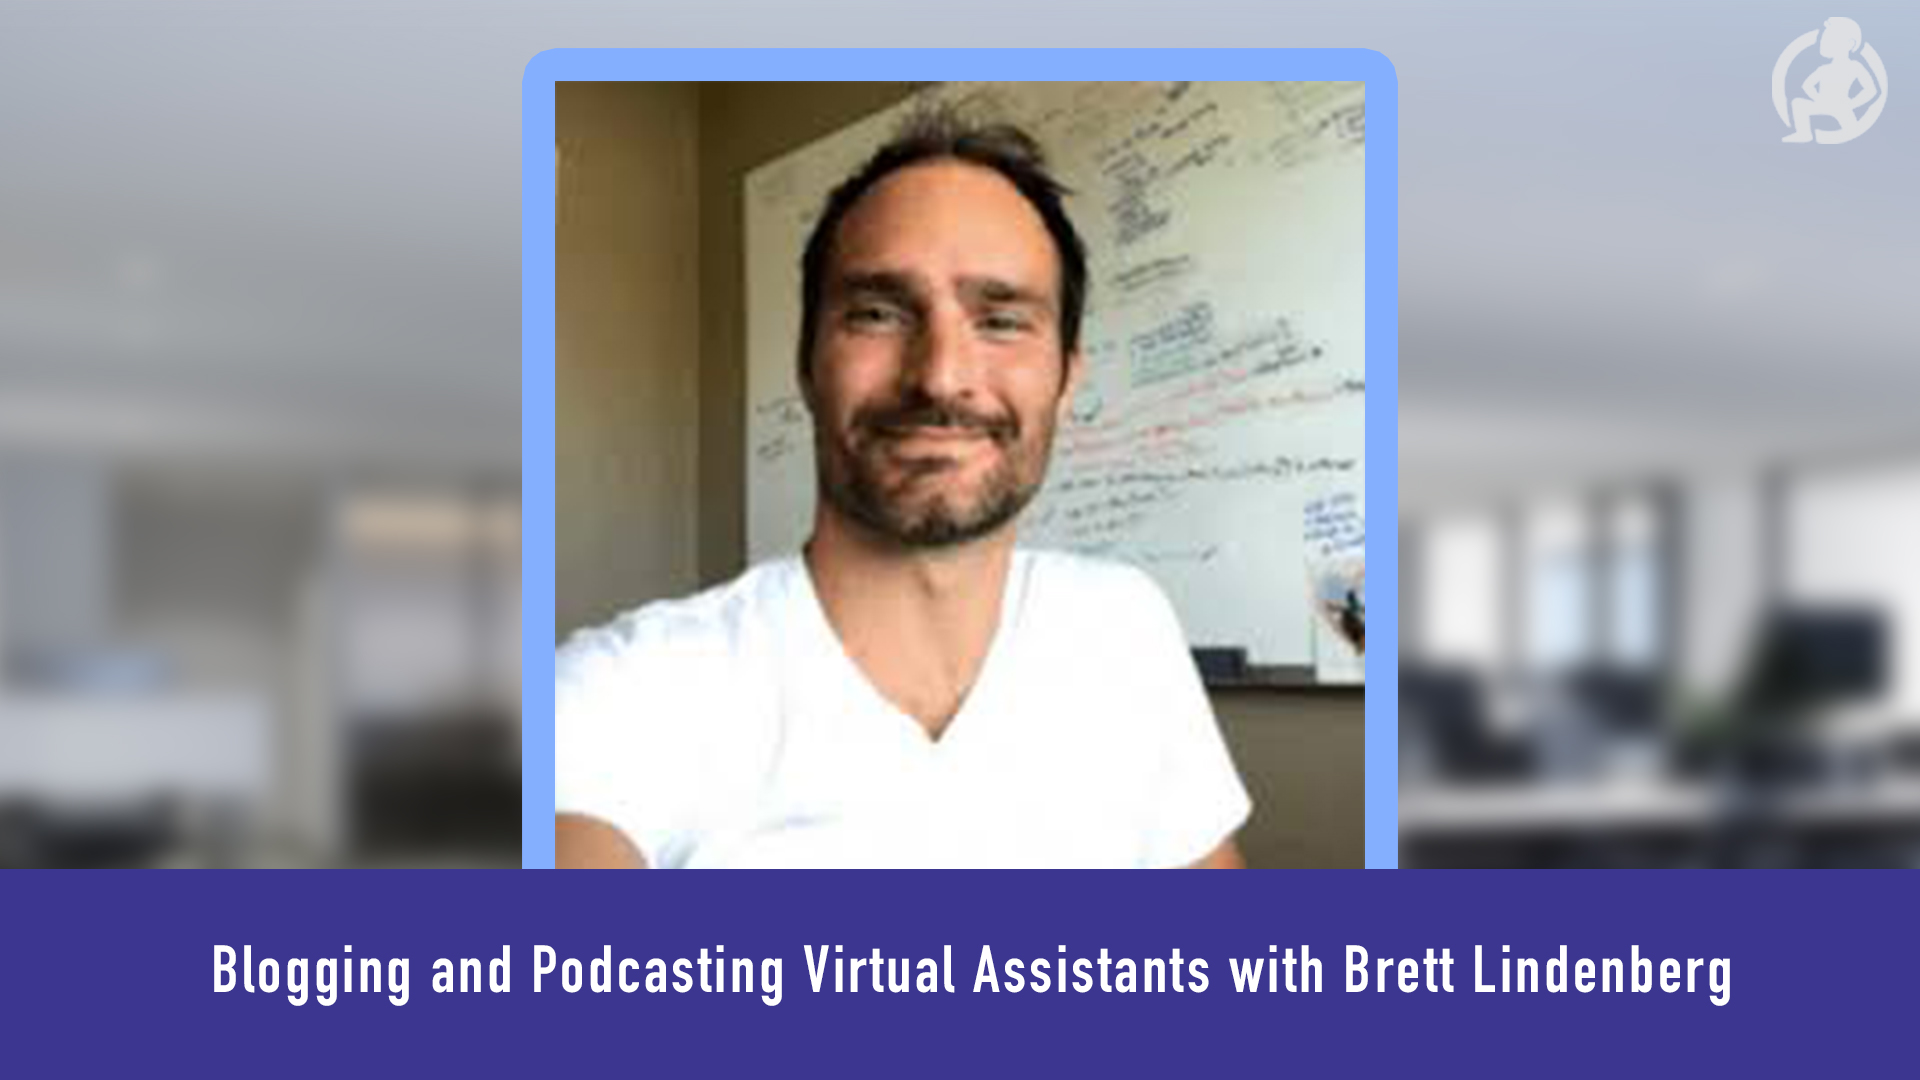 Blogging and Podcasting Virtual Assistants with Brett Lindenberg Feature (1)